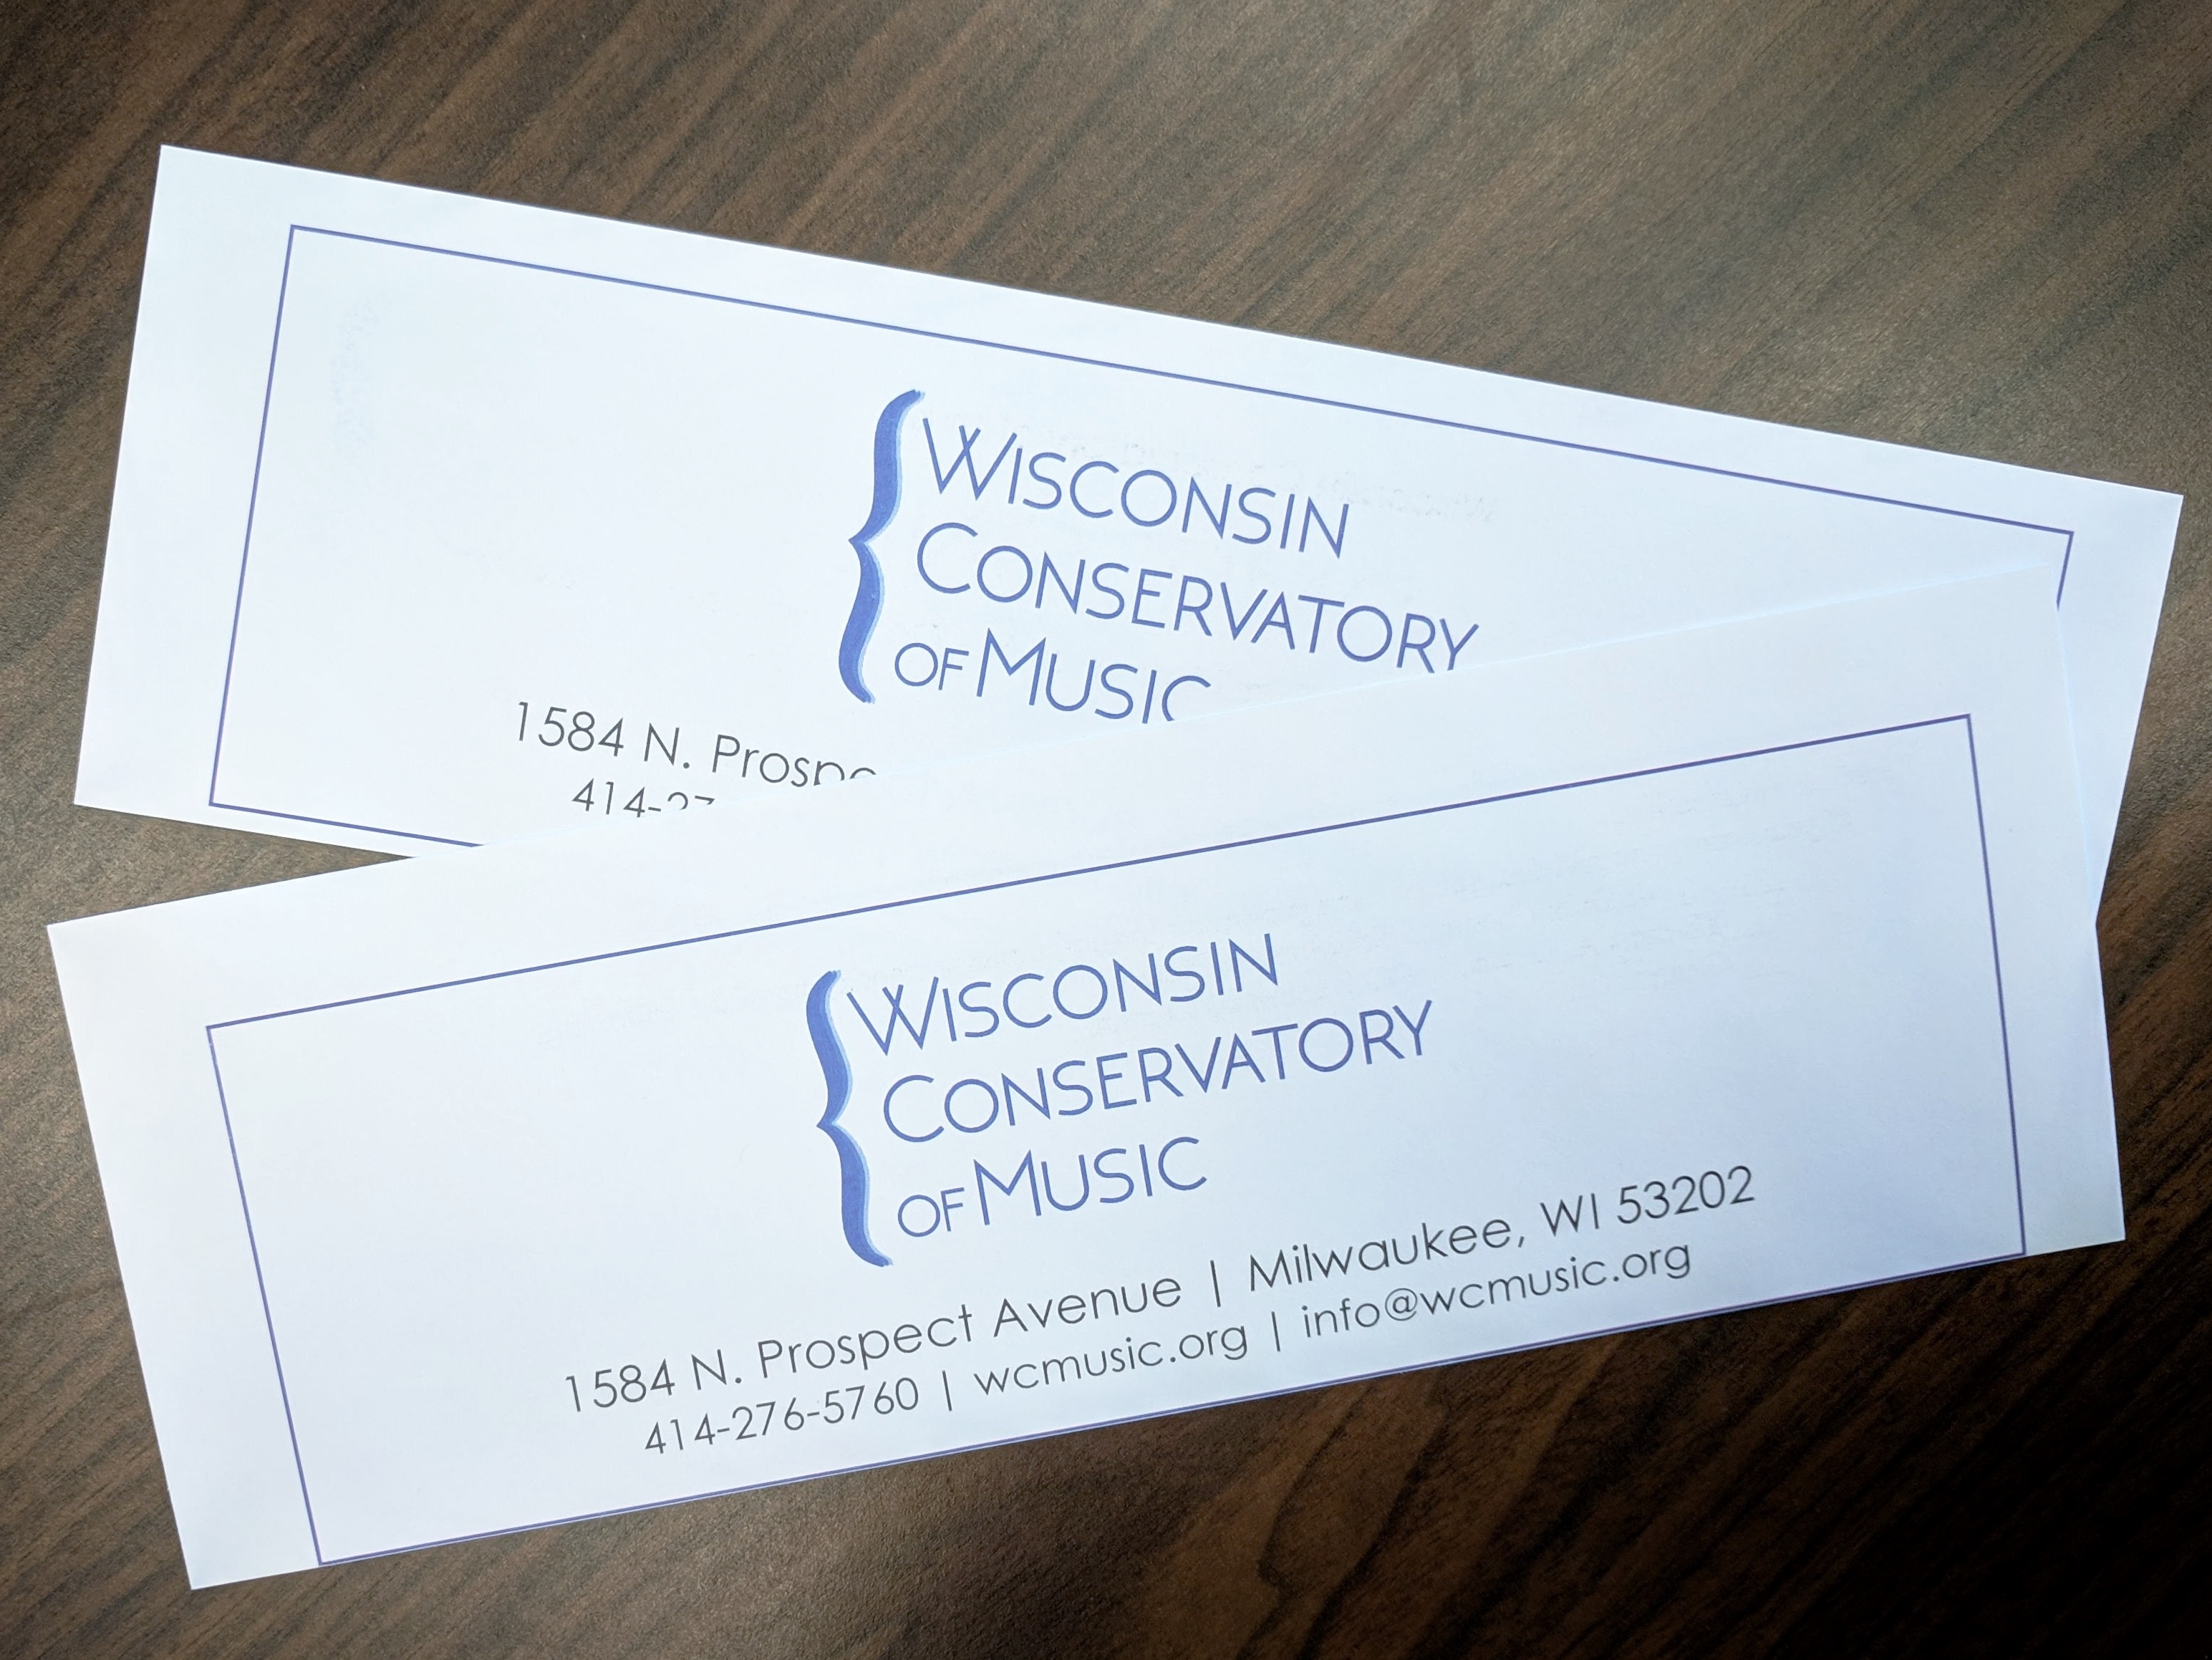 Two Tickets to the Wisconsin Conservatory of Music in Milwaukee, WI